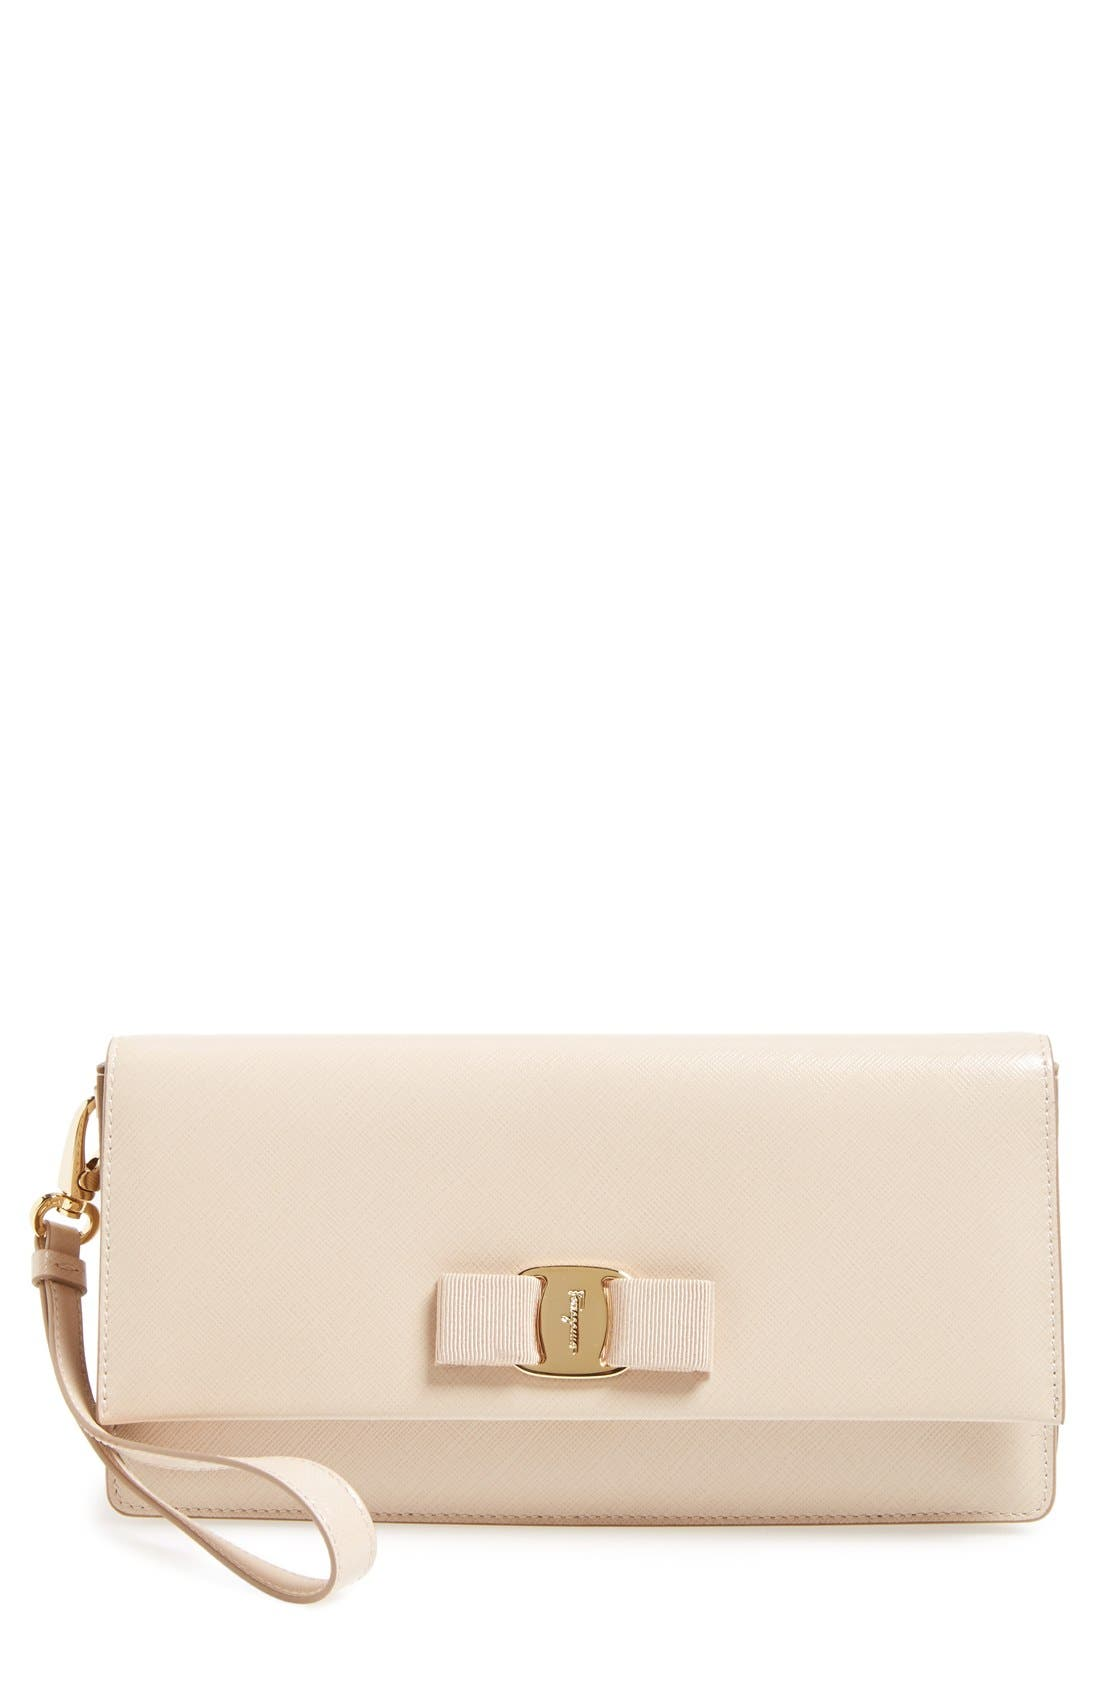 'Camy' Clutch,                         Main,                         color, 250